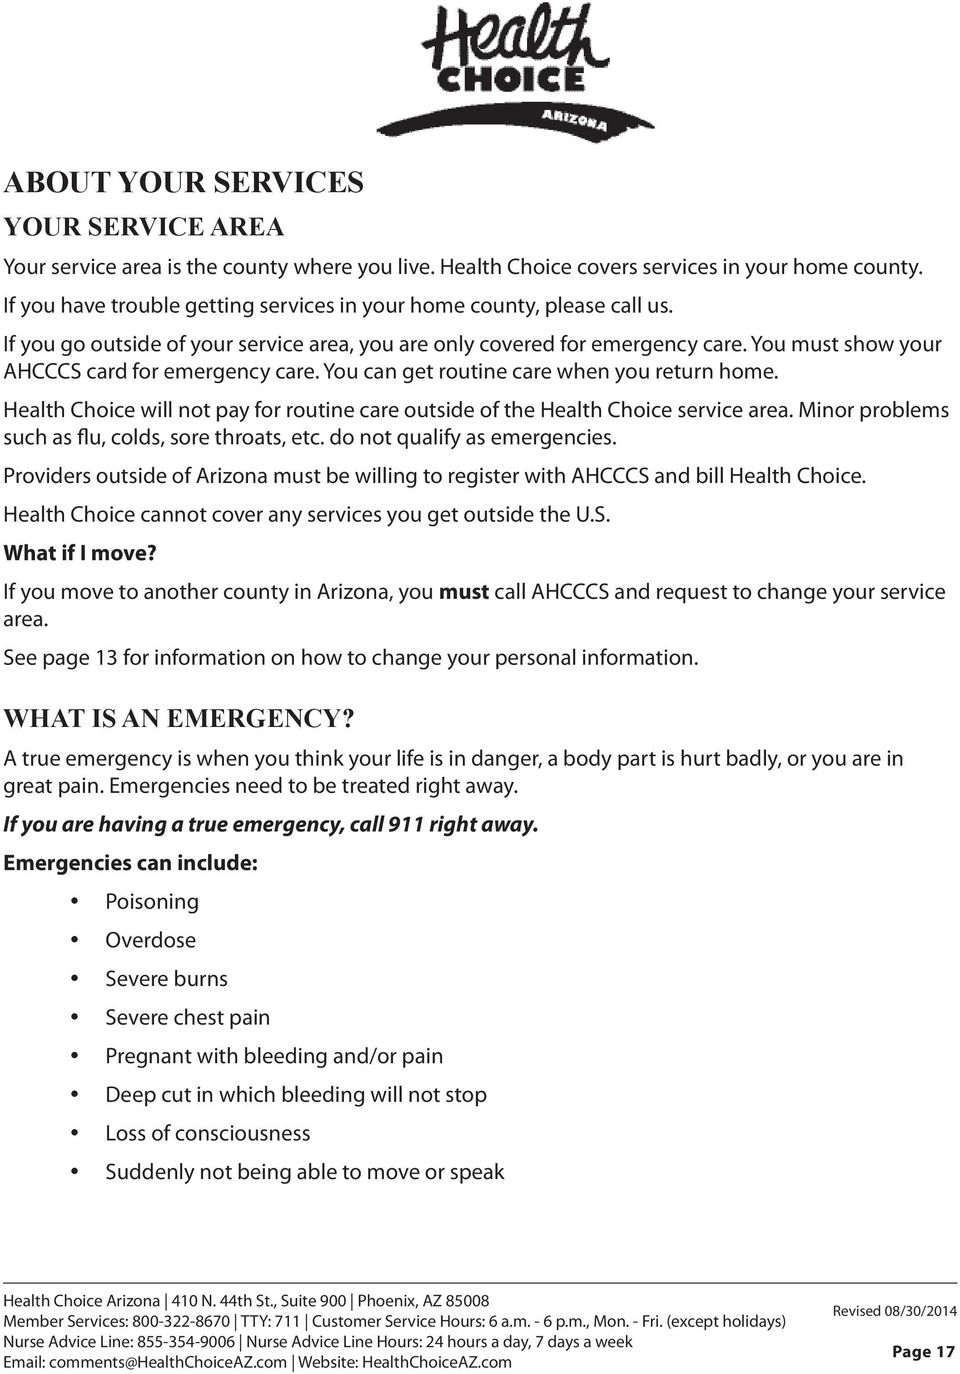 You must show your AHCCCS card for emergency care. You can get routine care when you return home. Health Choice will not pay for routine care outside of the Health Choice service area.